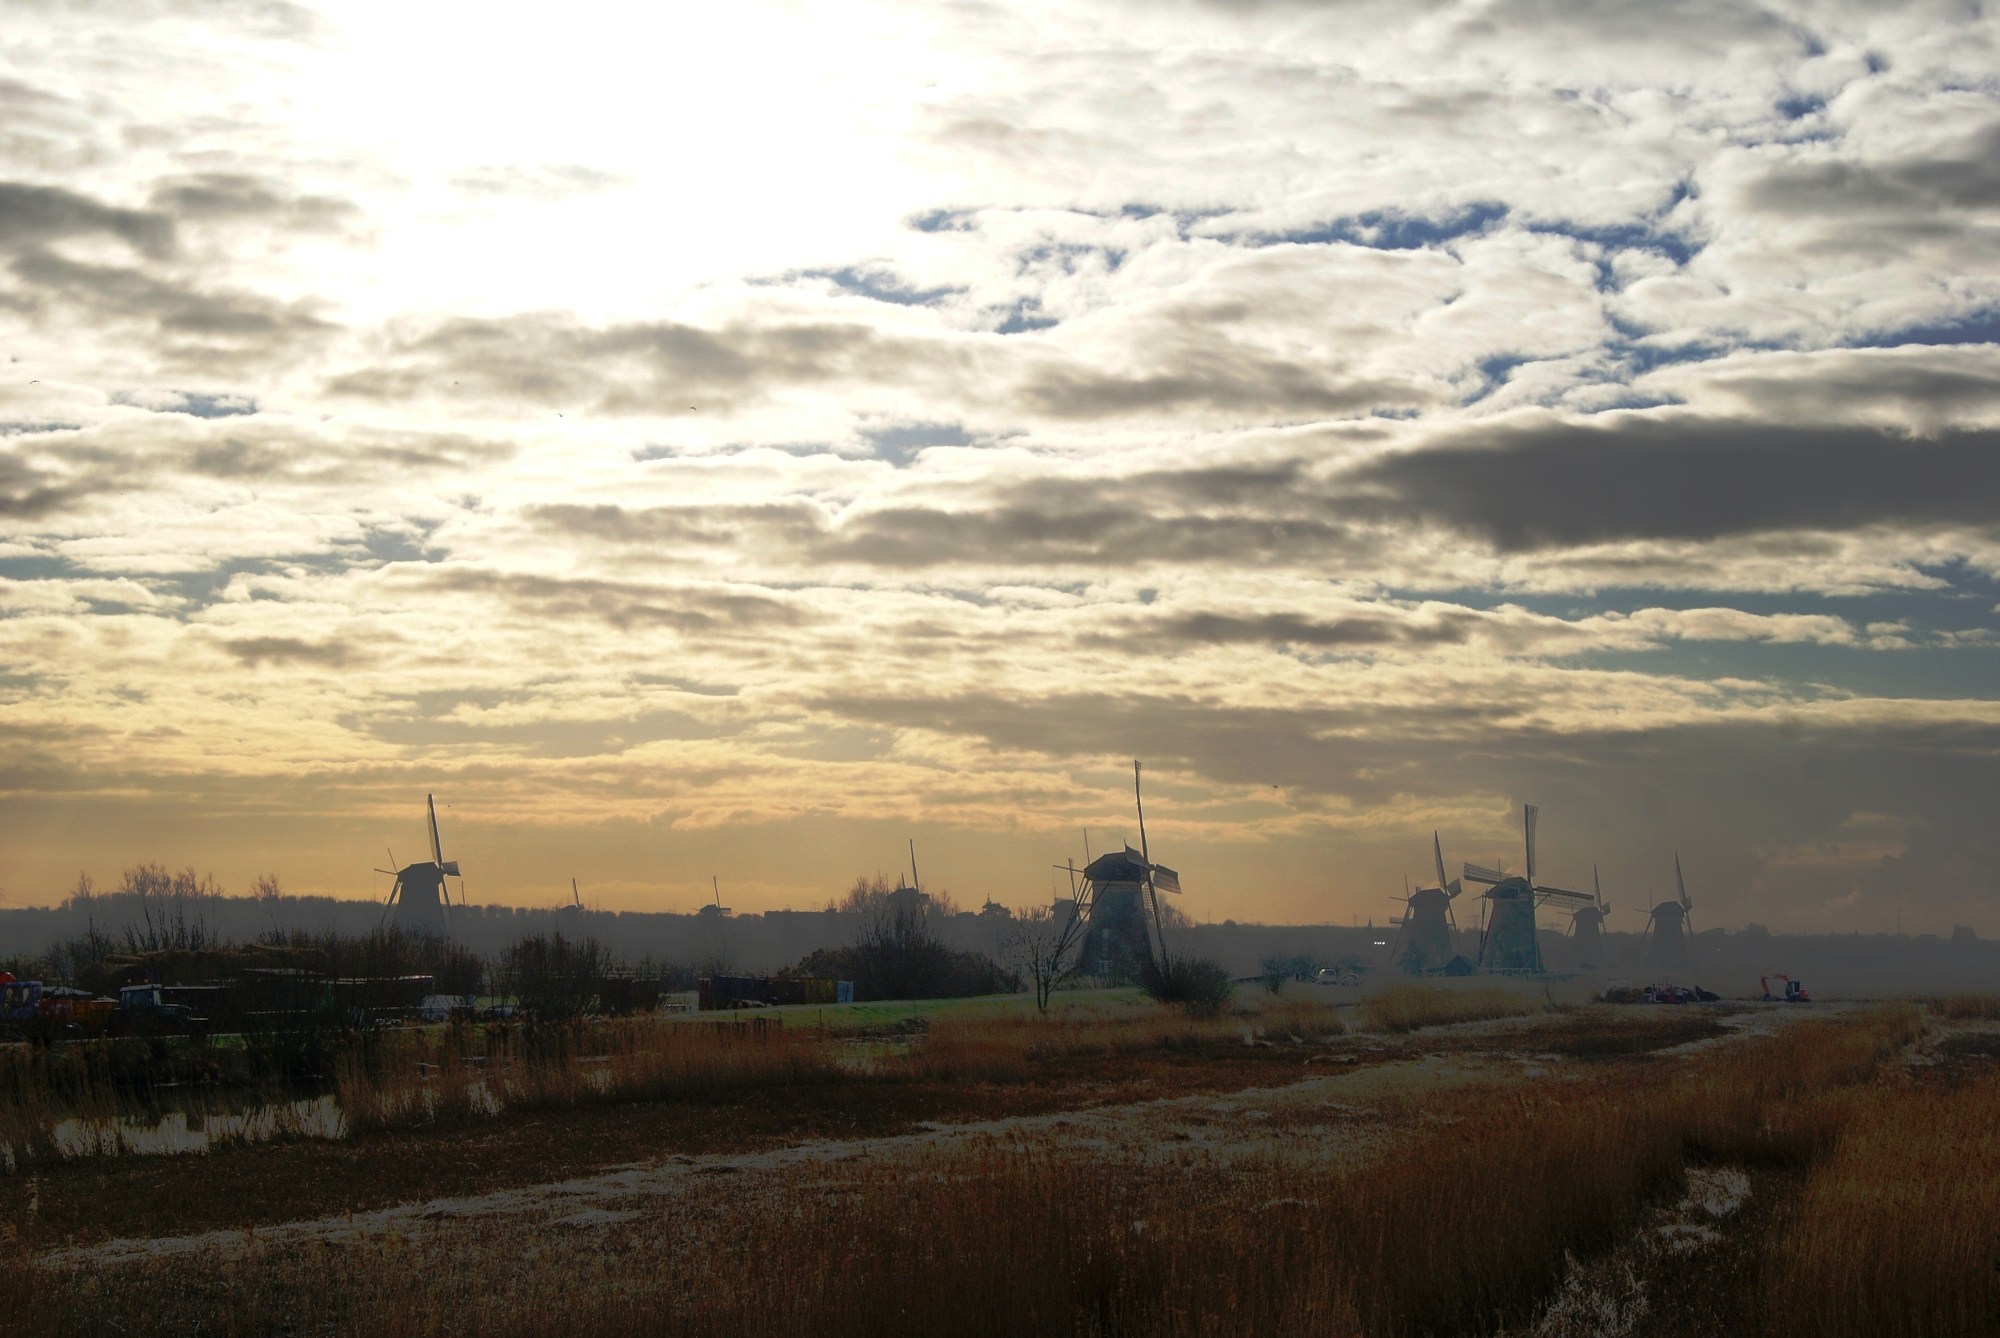 The mills of Kinderdijk in early morning